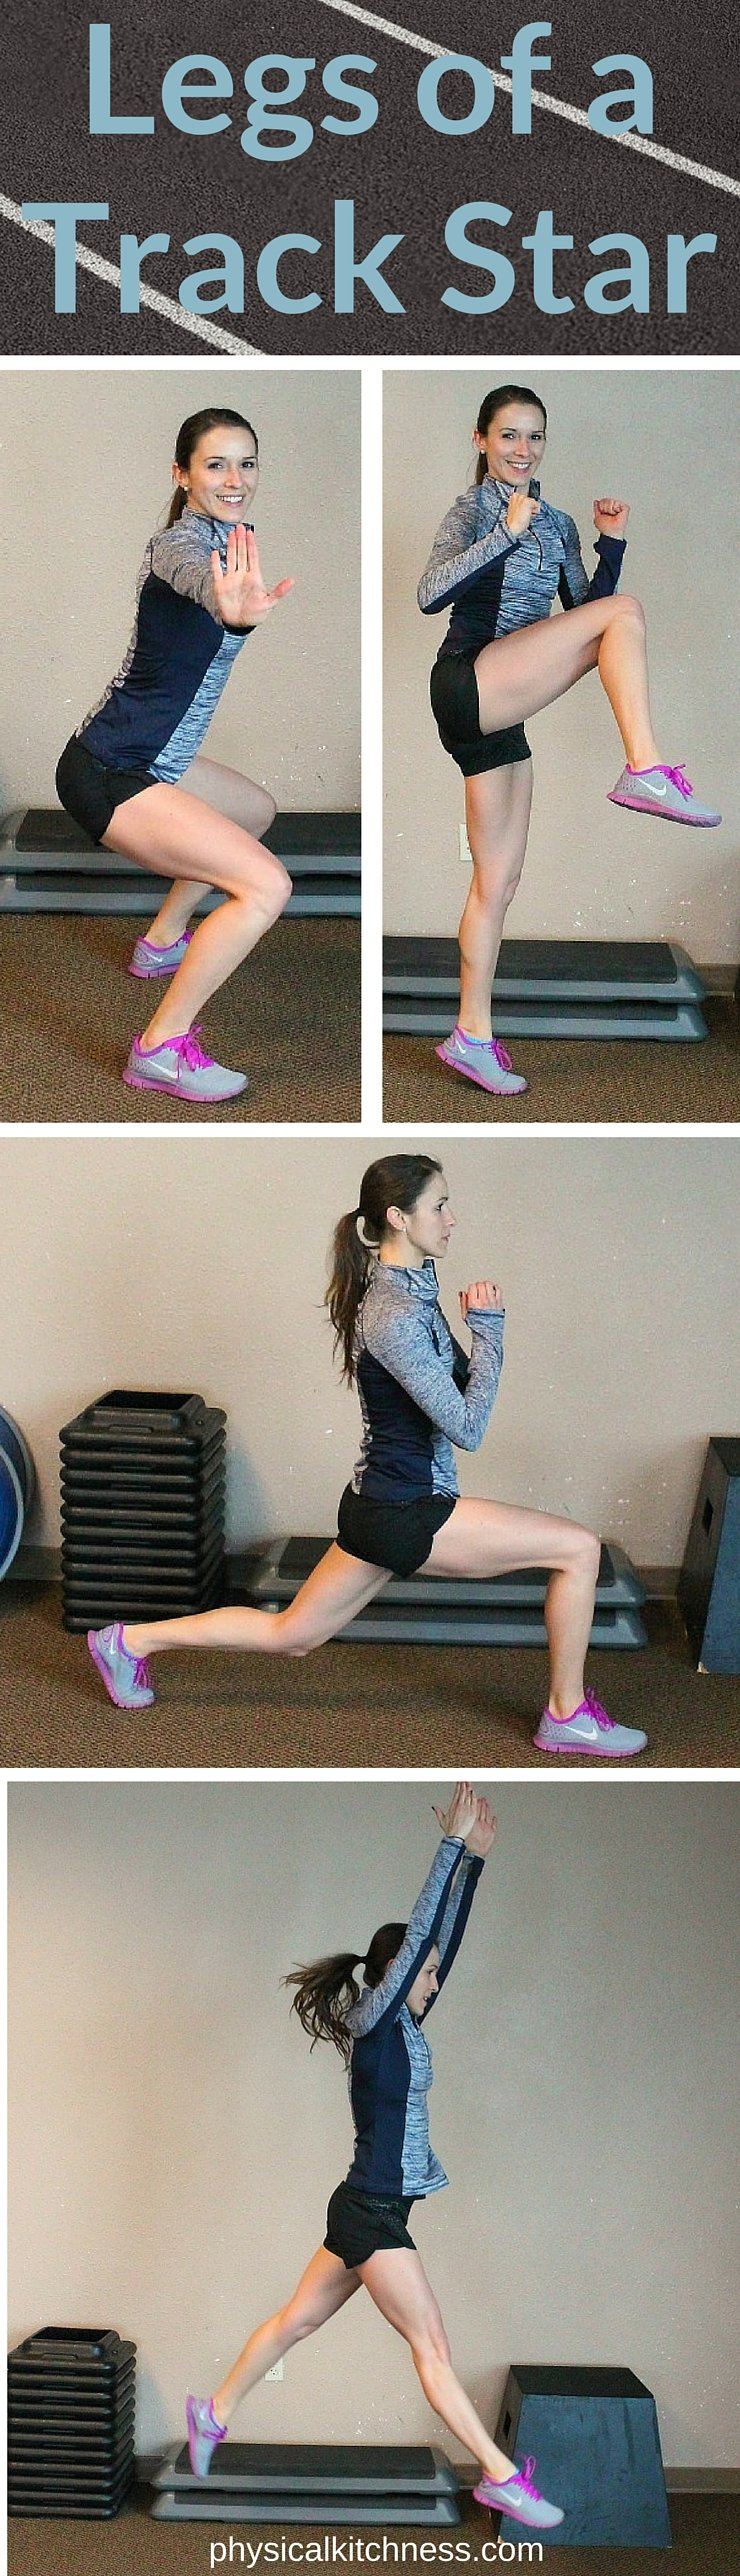 Want toned, sculpted, strong legs? Try this Legs of a Track Star workout for the best way to get the legs of your dreams! Plyometrics, squats, and lunges are the key!